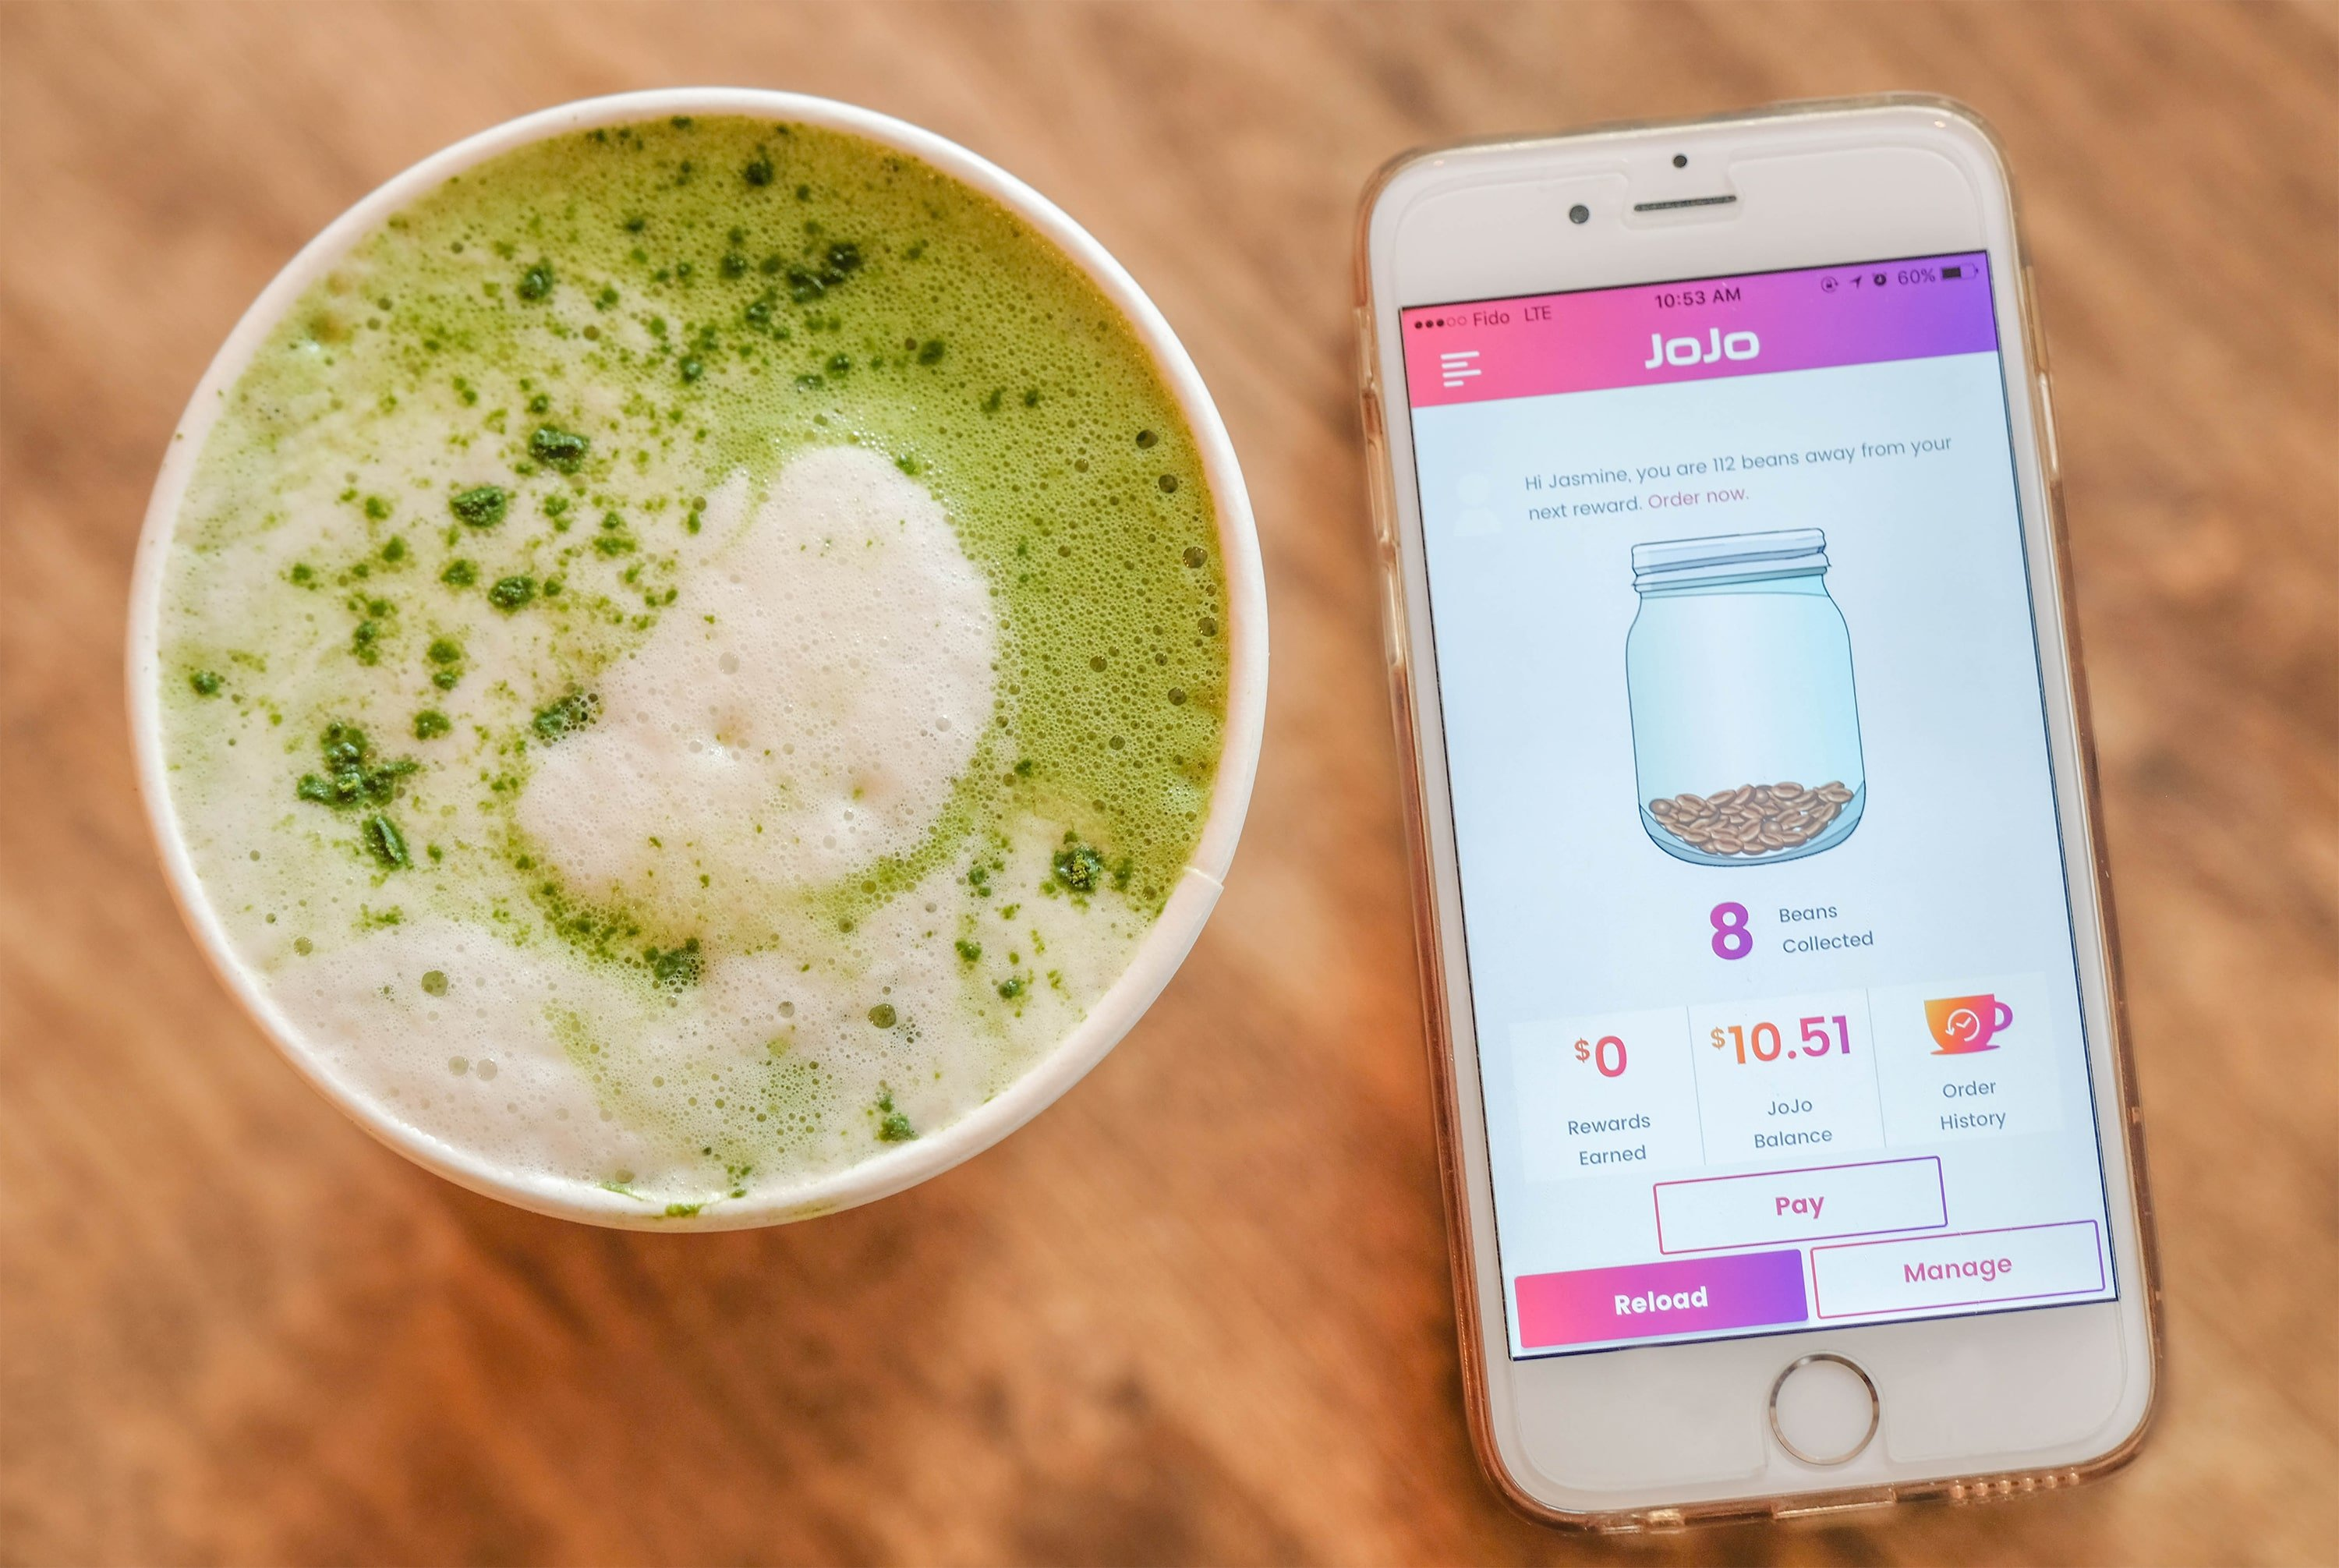 JoJo - New App Allows Local Coffeeshops To Give Preorder Option And Rewards To Clients